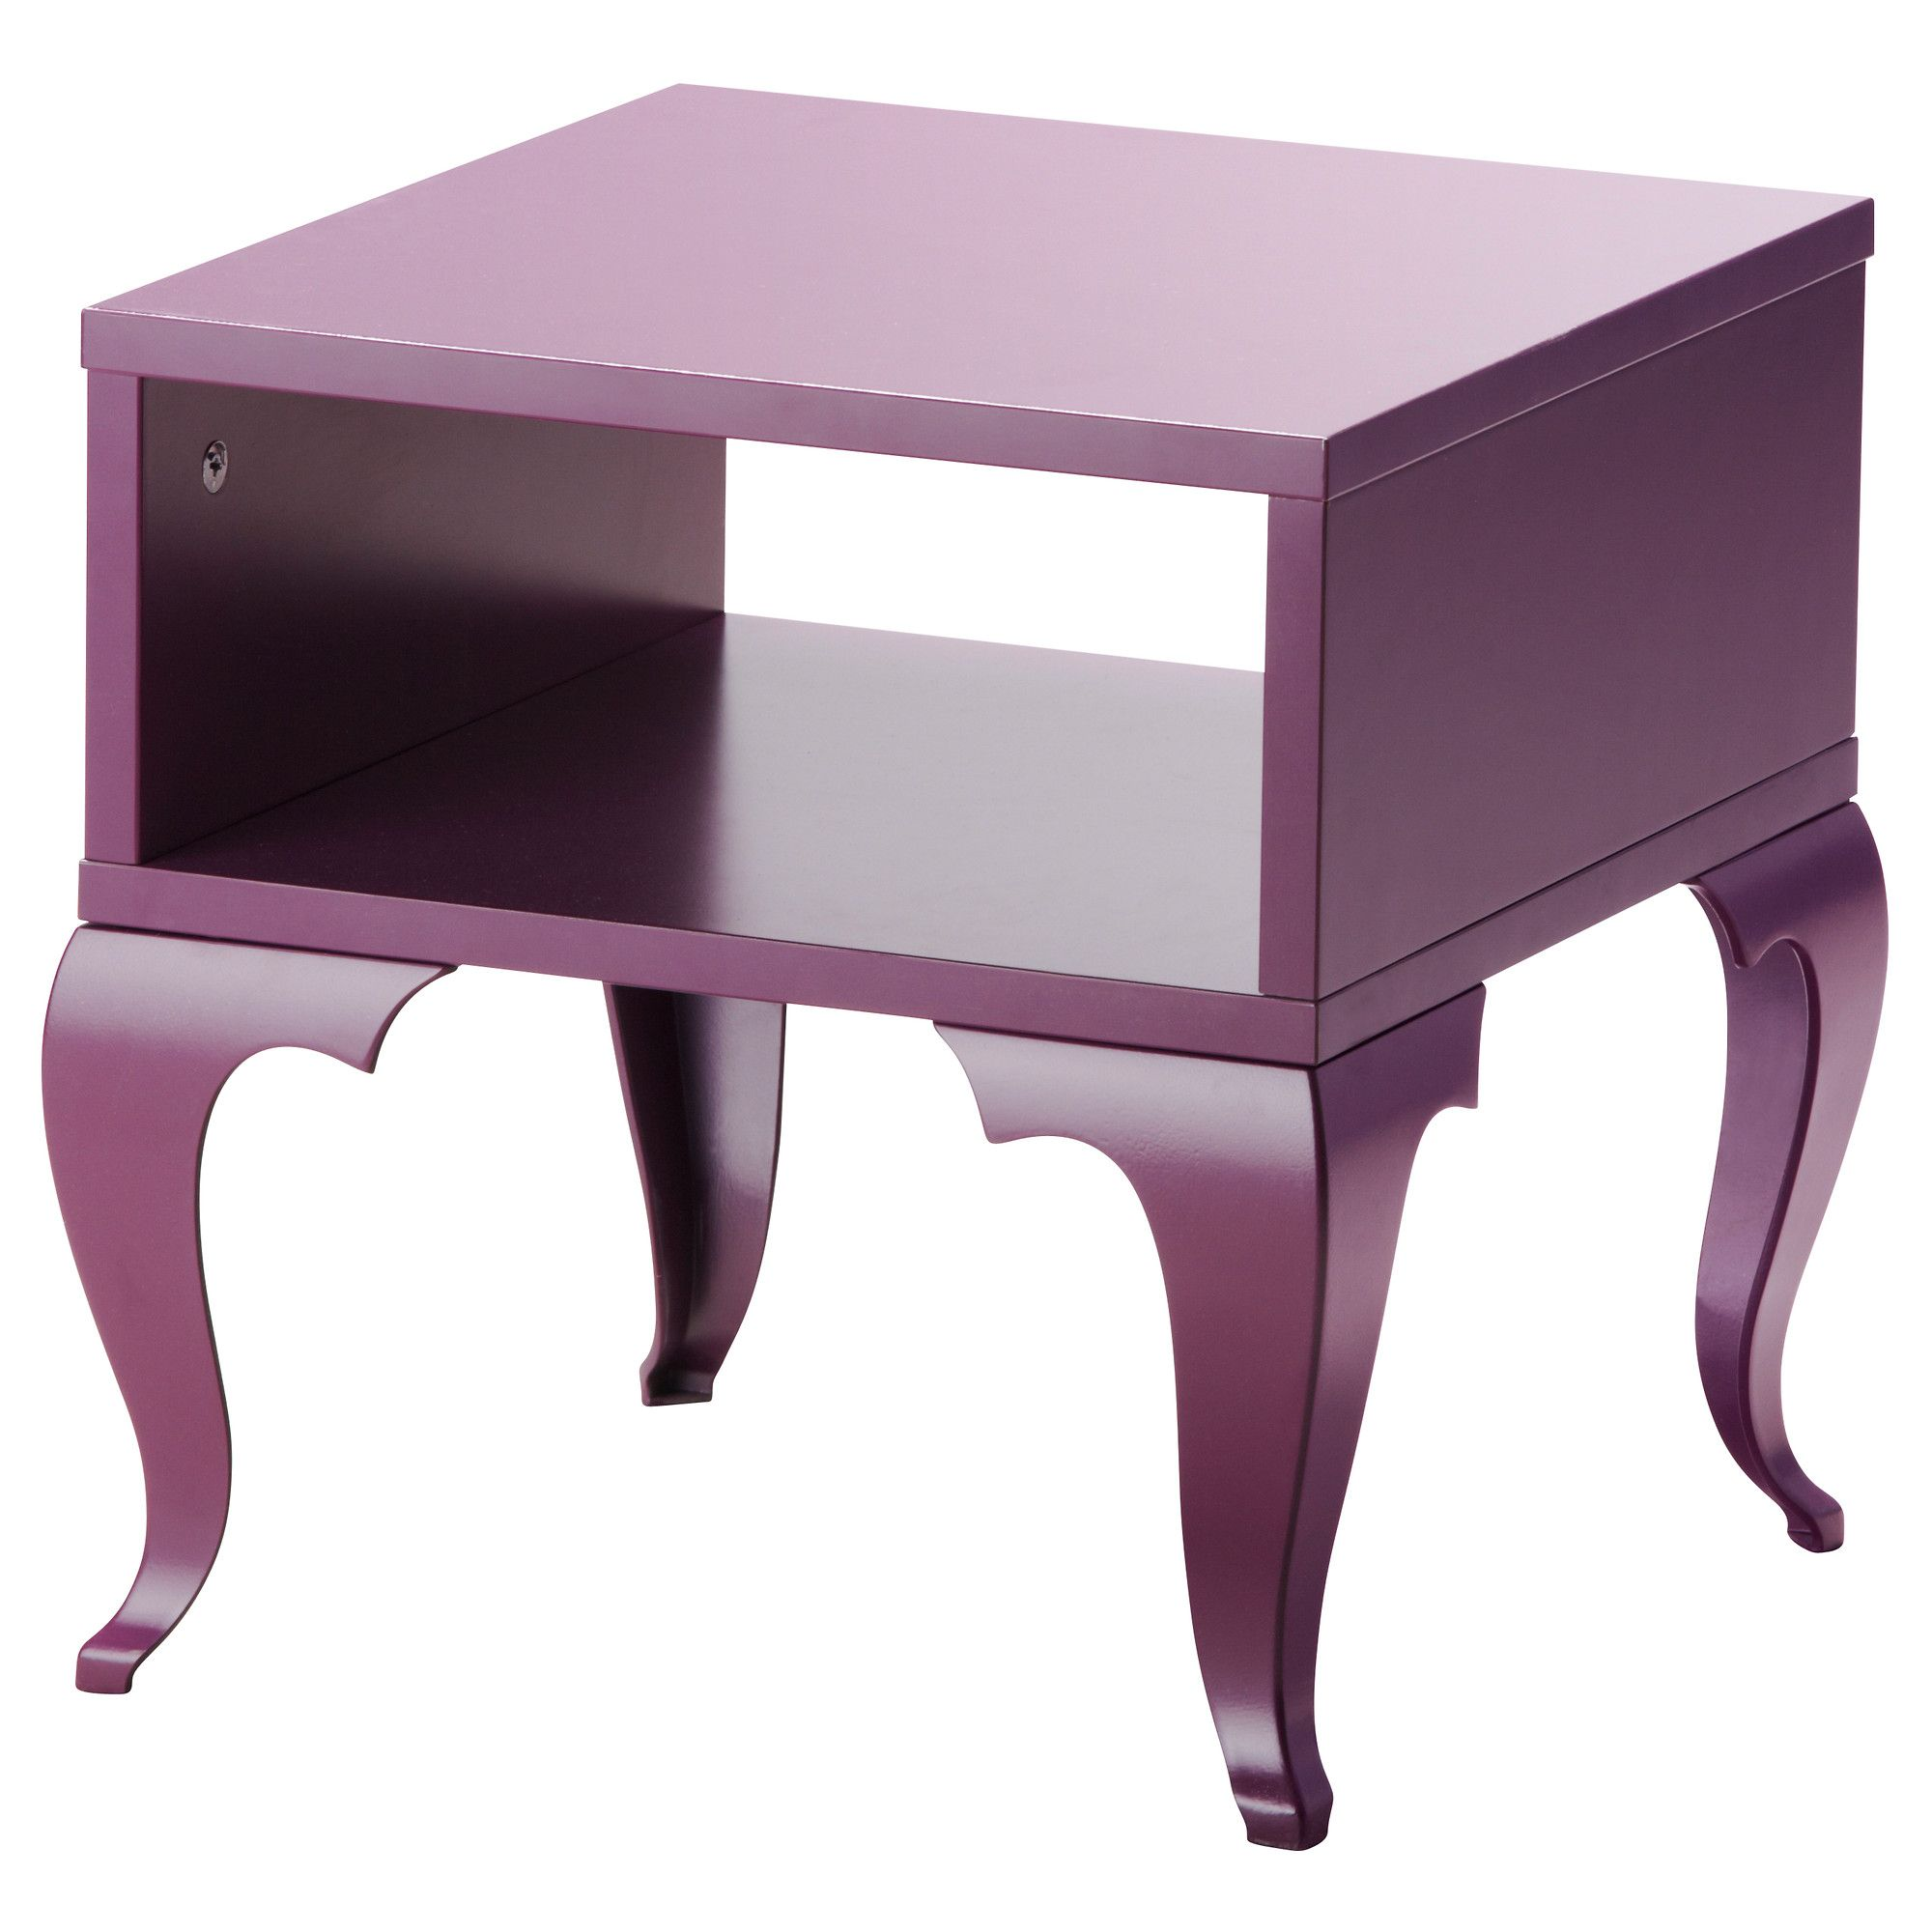 shop for furniture home accessories  more  ikea living